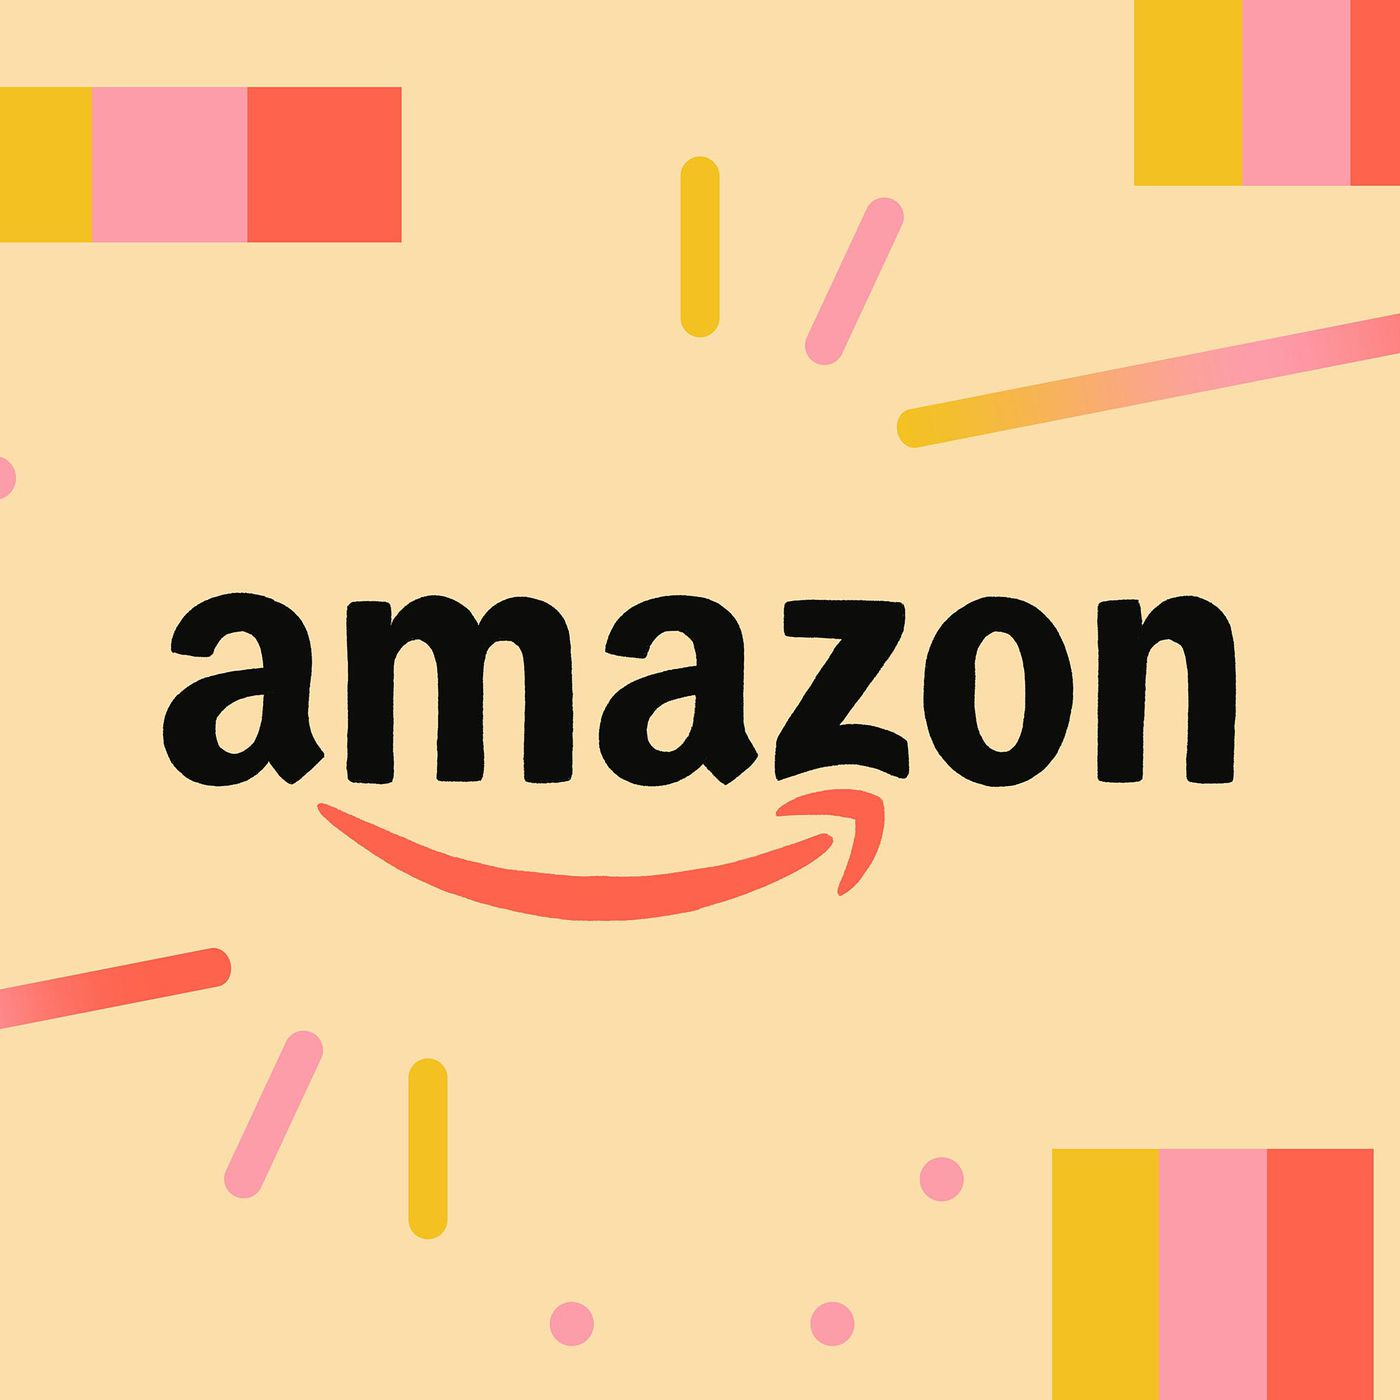 Amazon Hq2 Winner Appears To Be Both New York And Crystal City Virginia Curbed